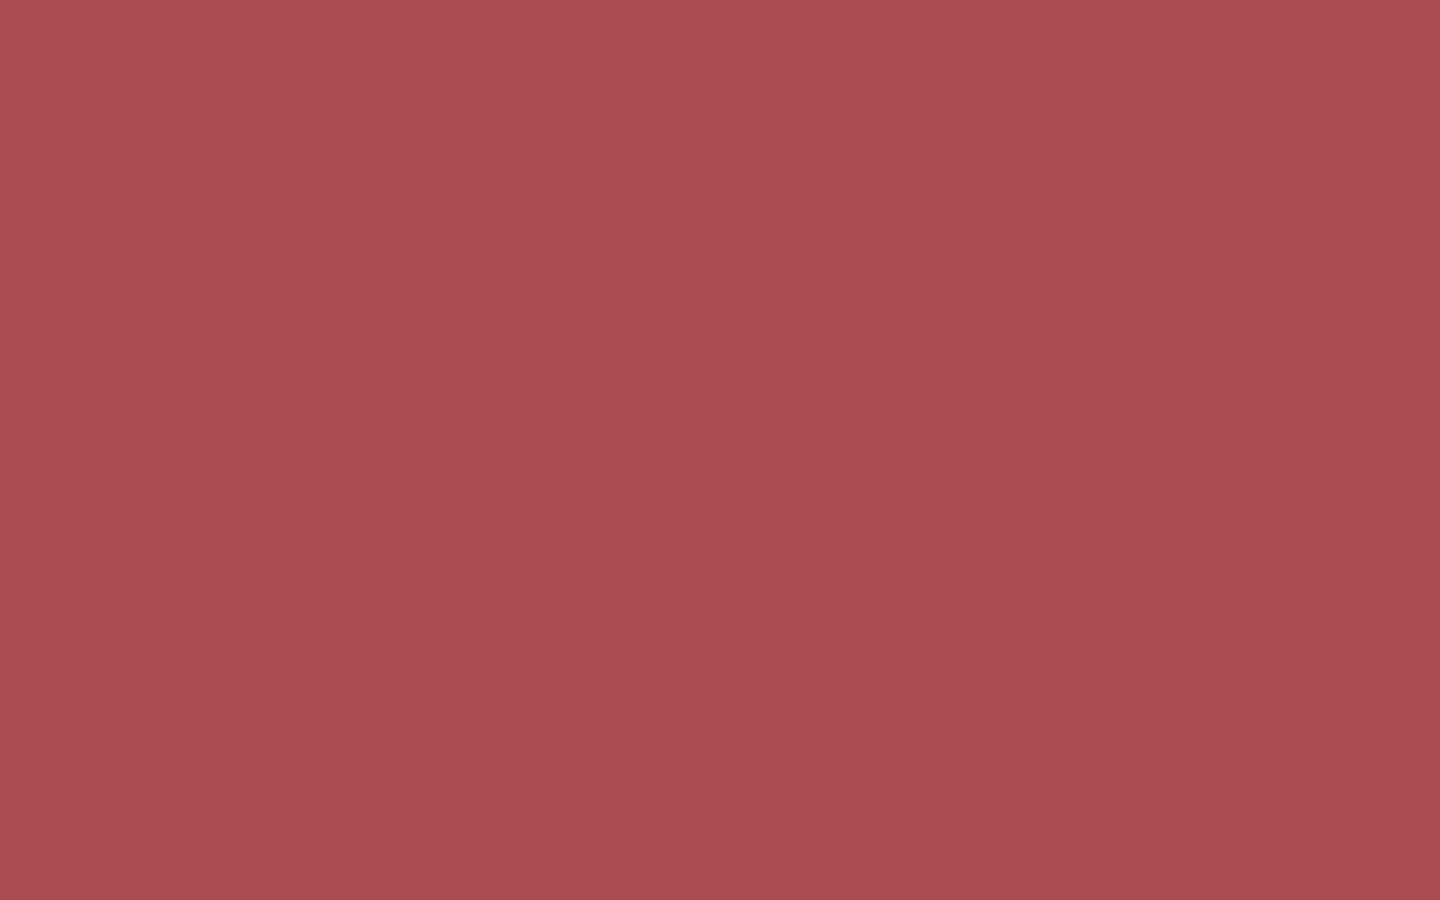 1440x900 English Red Solid Color Background